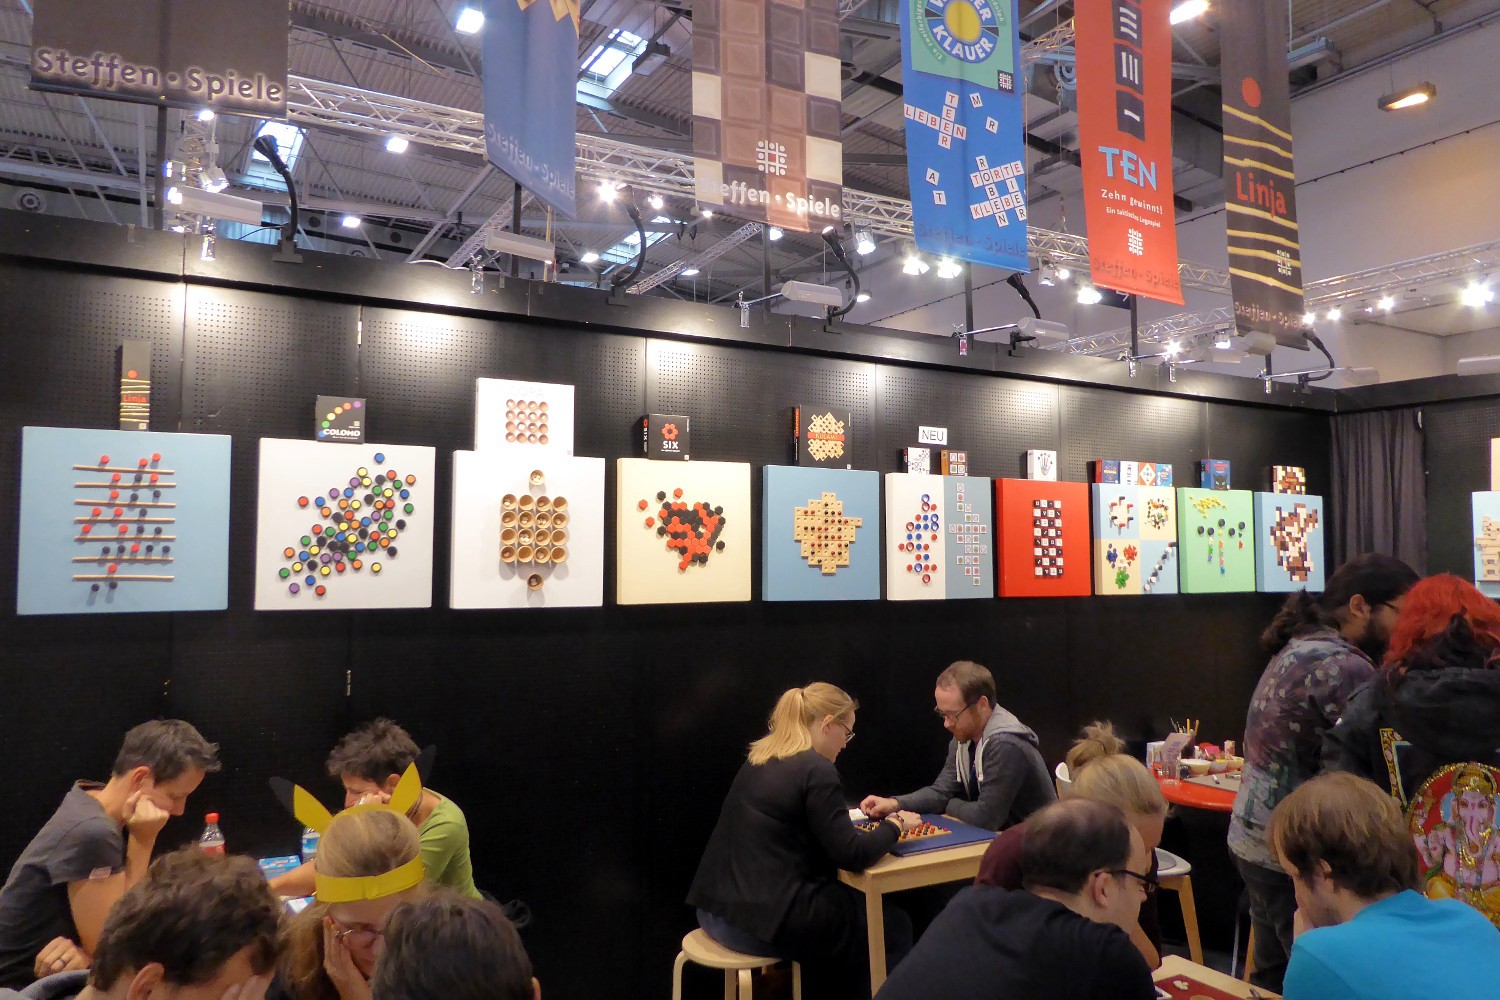 Abstract board games at the stand of Steffen Spiele (photo from 2018)